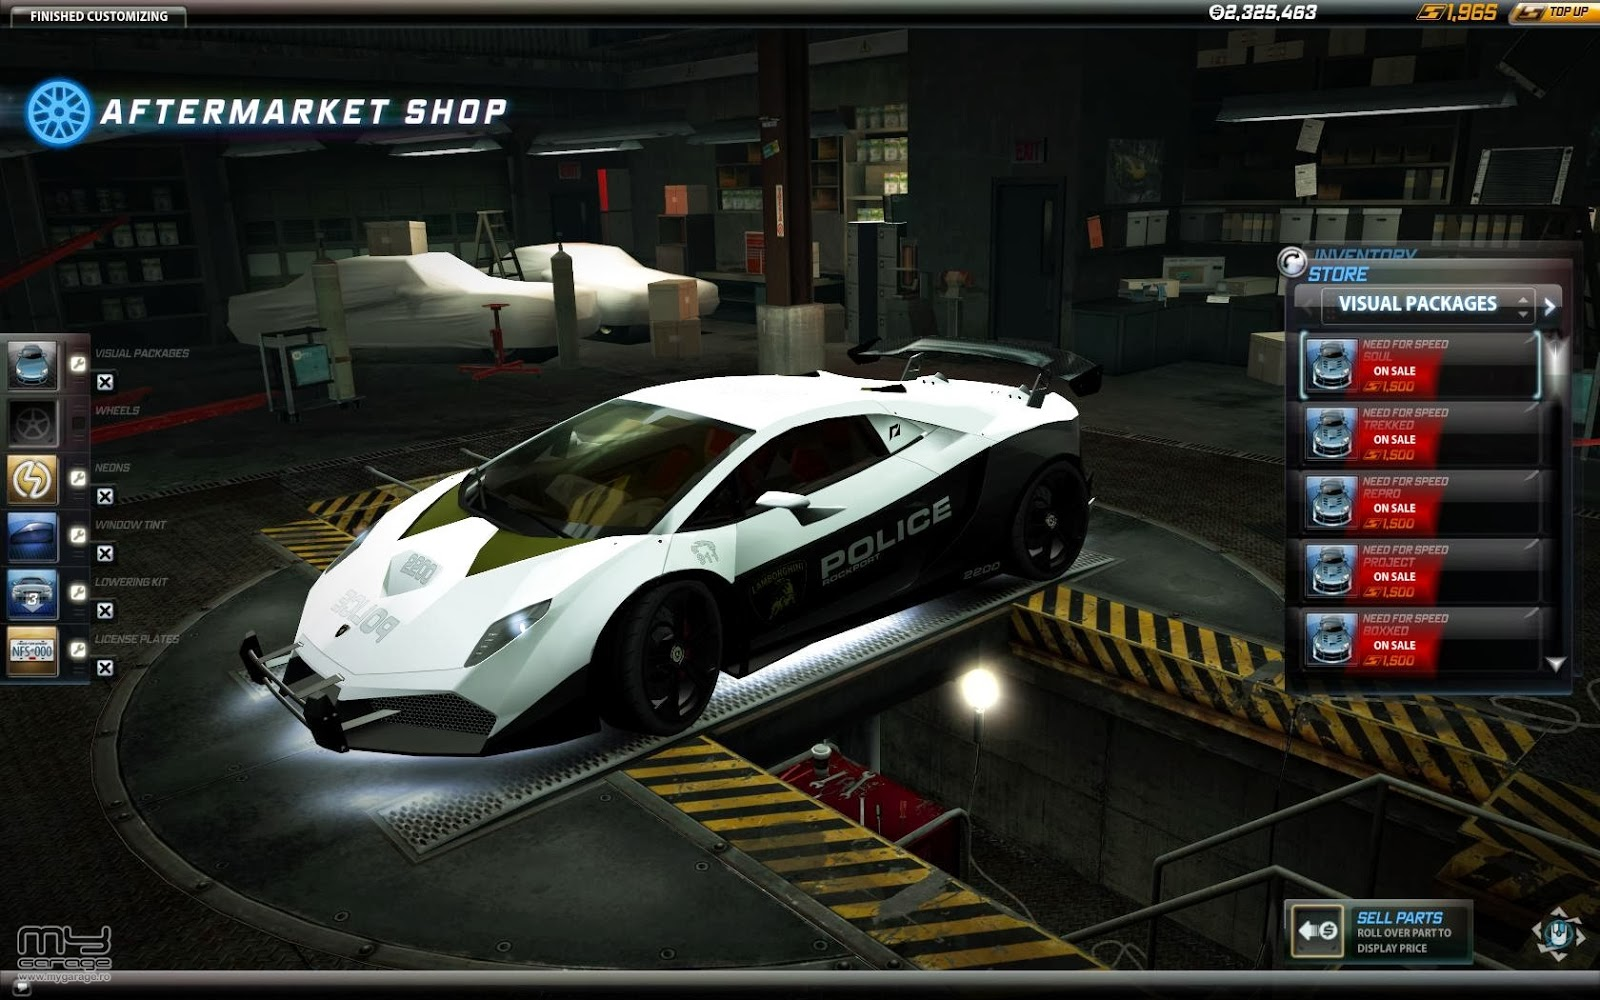 nfs online need for speed world joygame de joygame aaronic. Black Bedroom Furniture Sets. Home Design Ideas